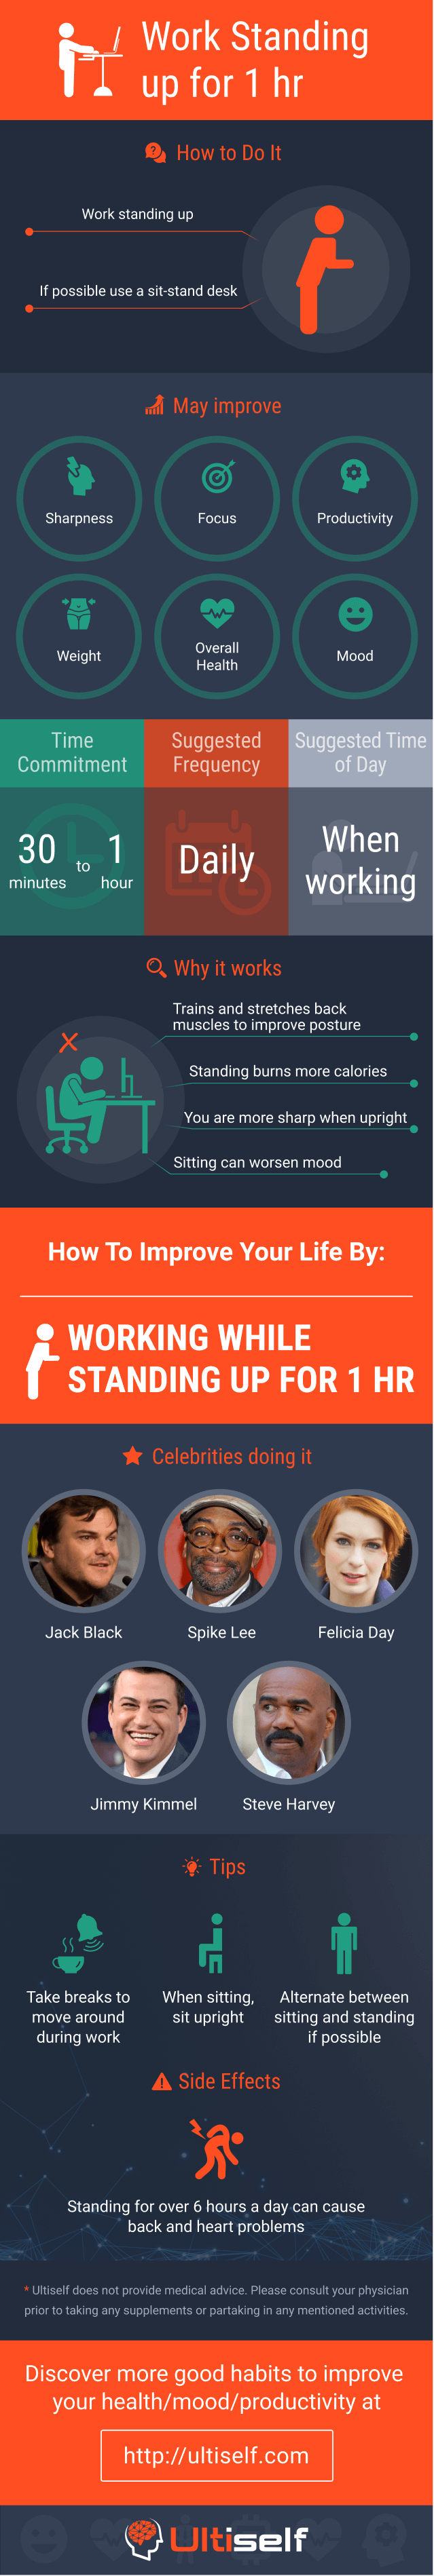 Work Standing up for 1 hr infographic